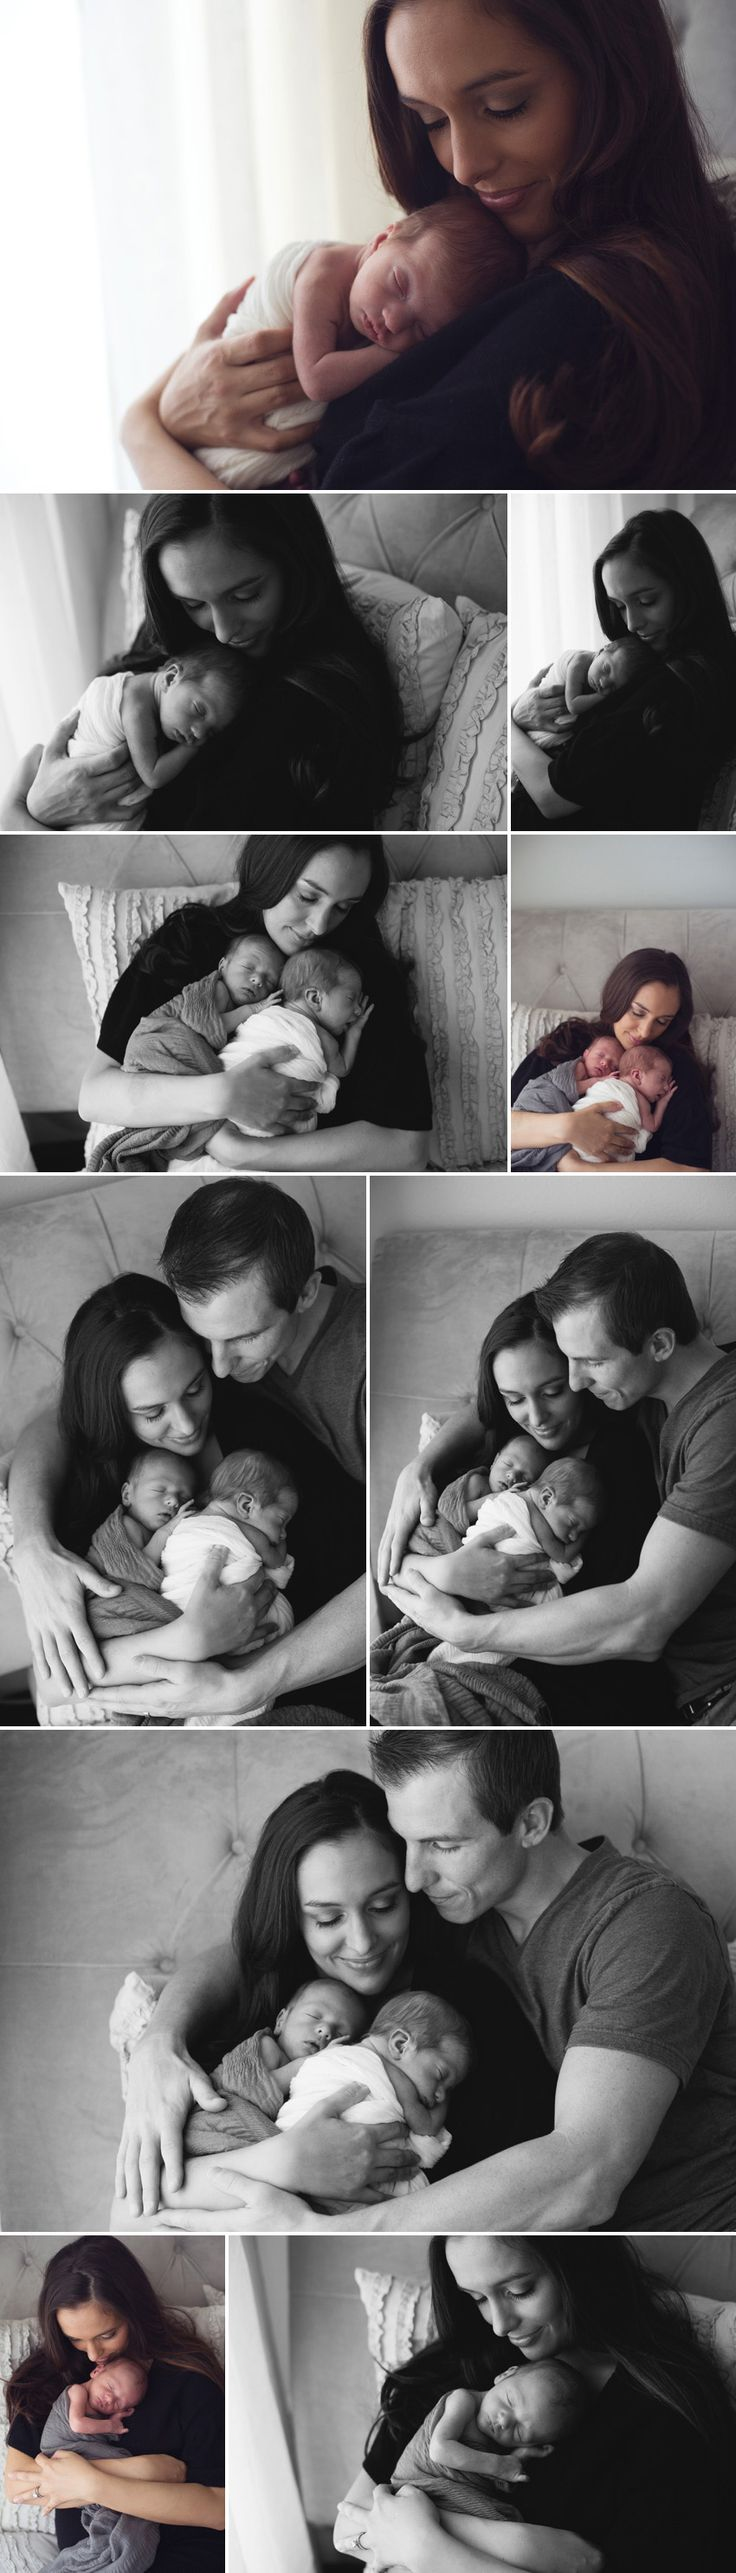 newborn baby love the picture with the mom and twins on her chest